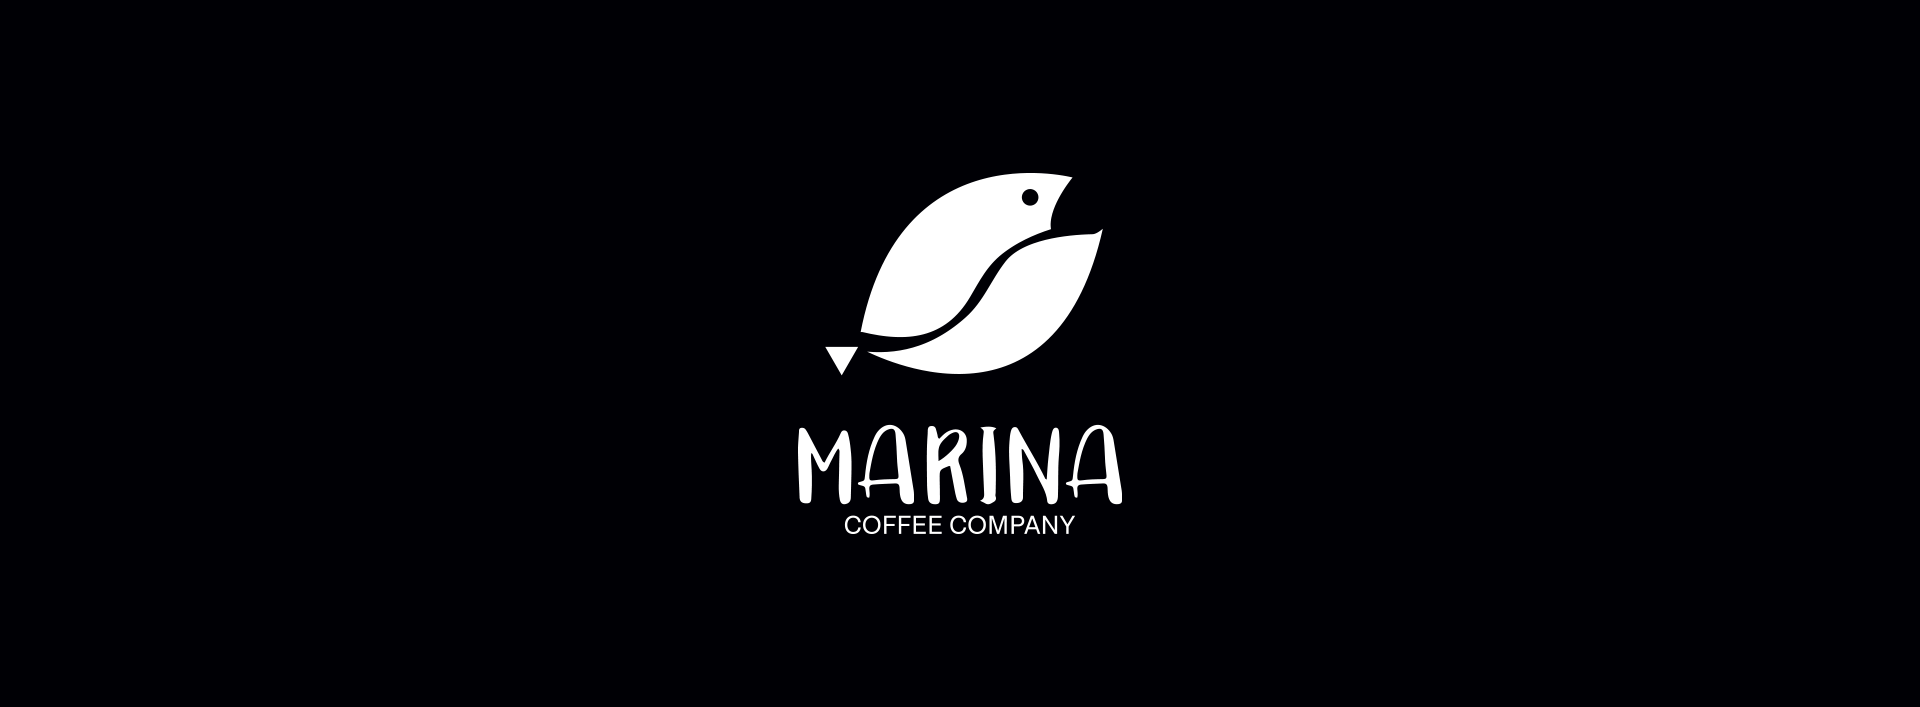 Logo Design - Coffee Company